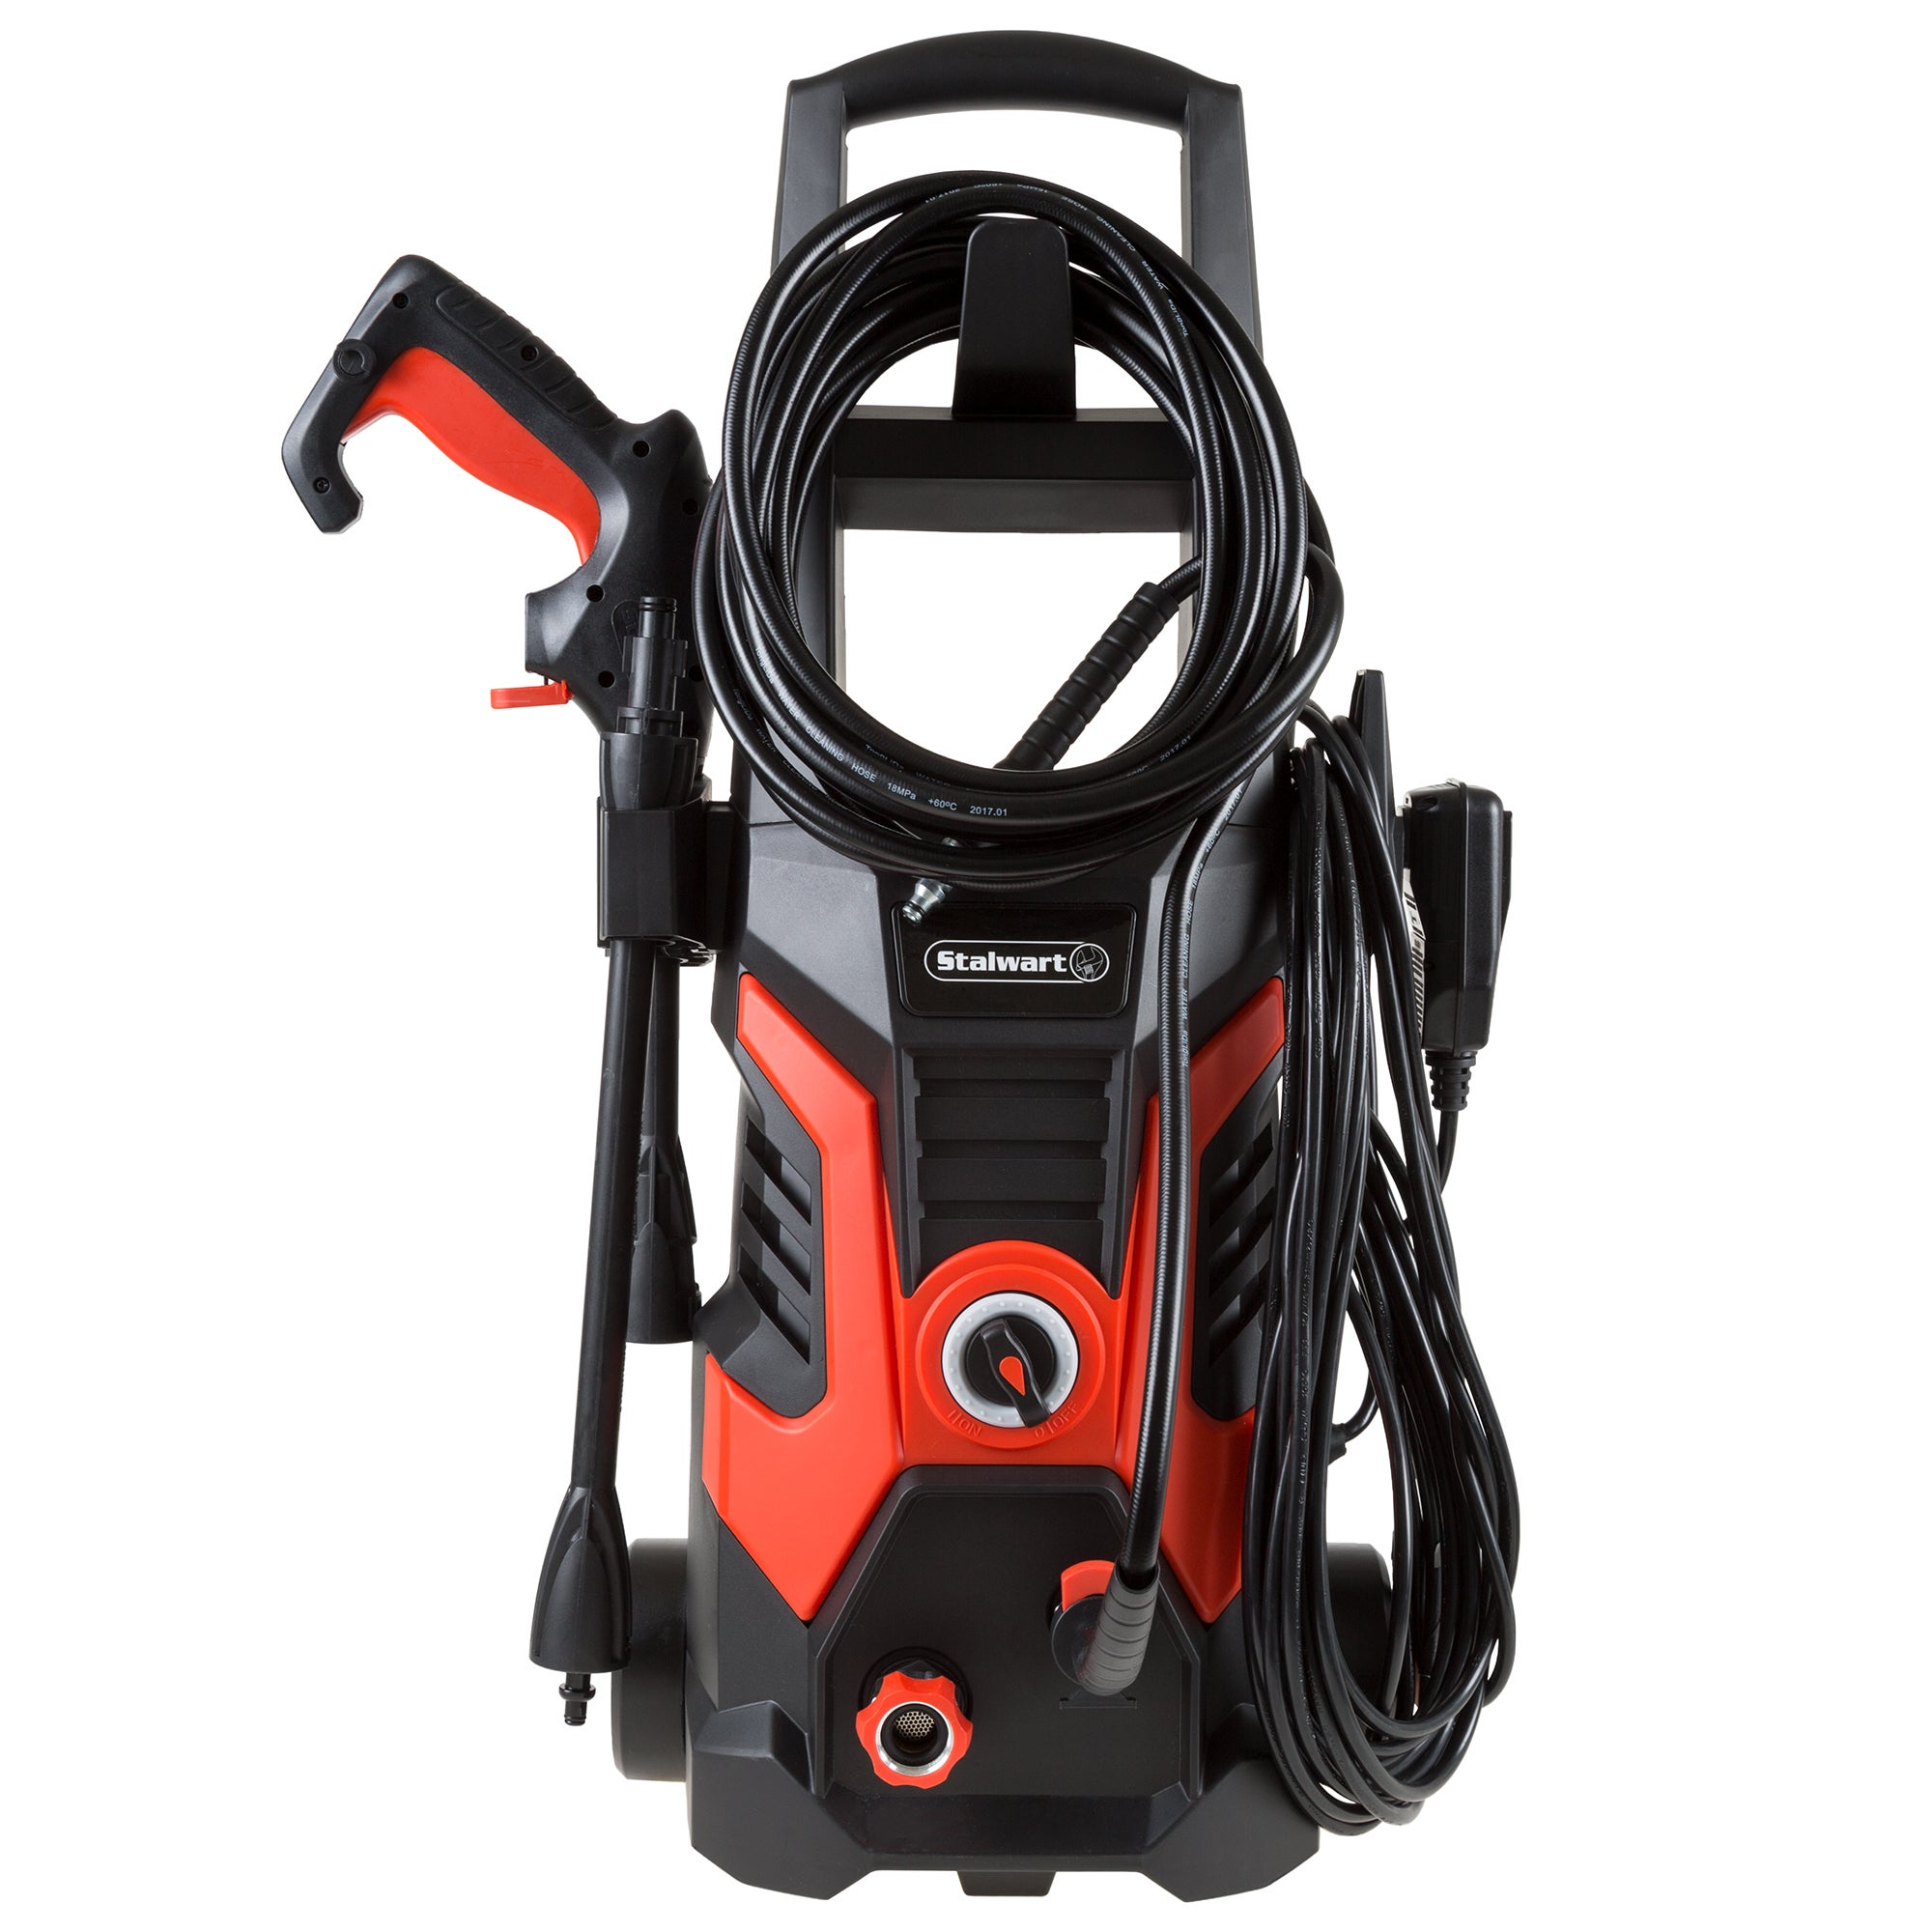 Pressure Washer Electric Powered By Stalwart (Power Washe...